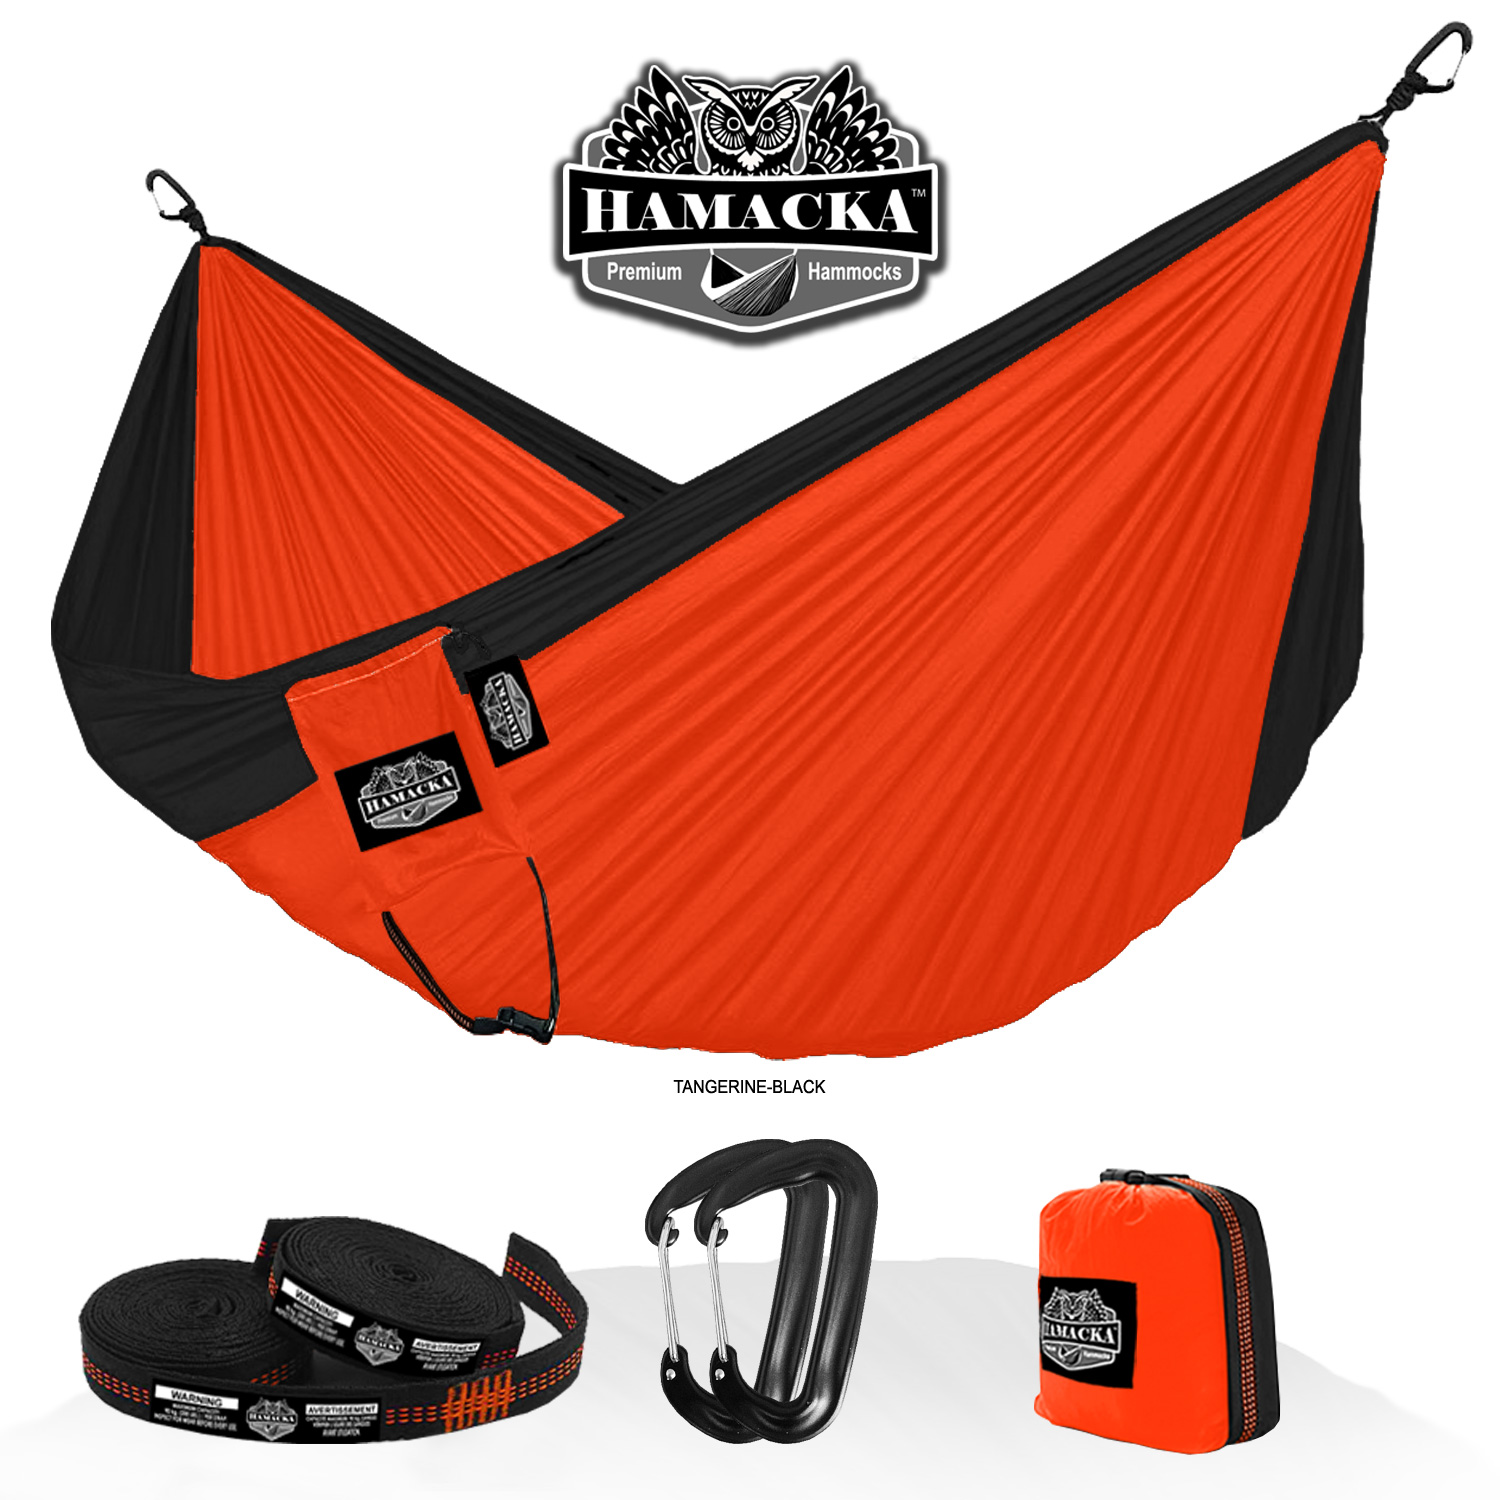 TRAVEL HAMMOCK SET (TANGERINE)